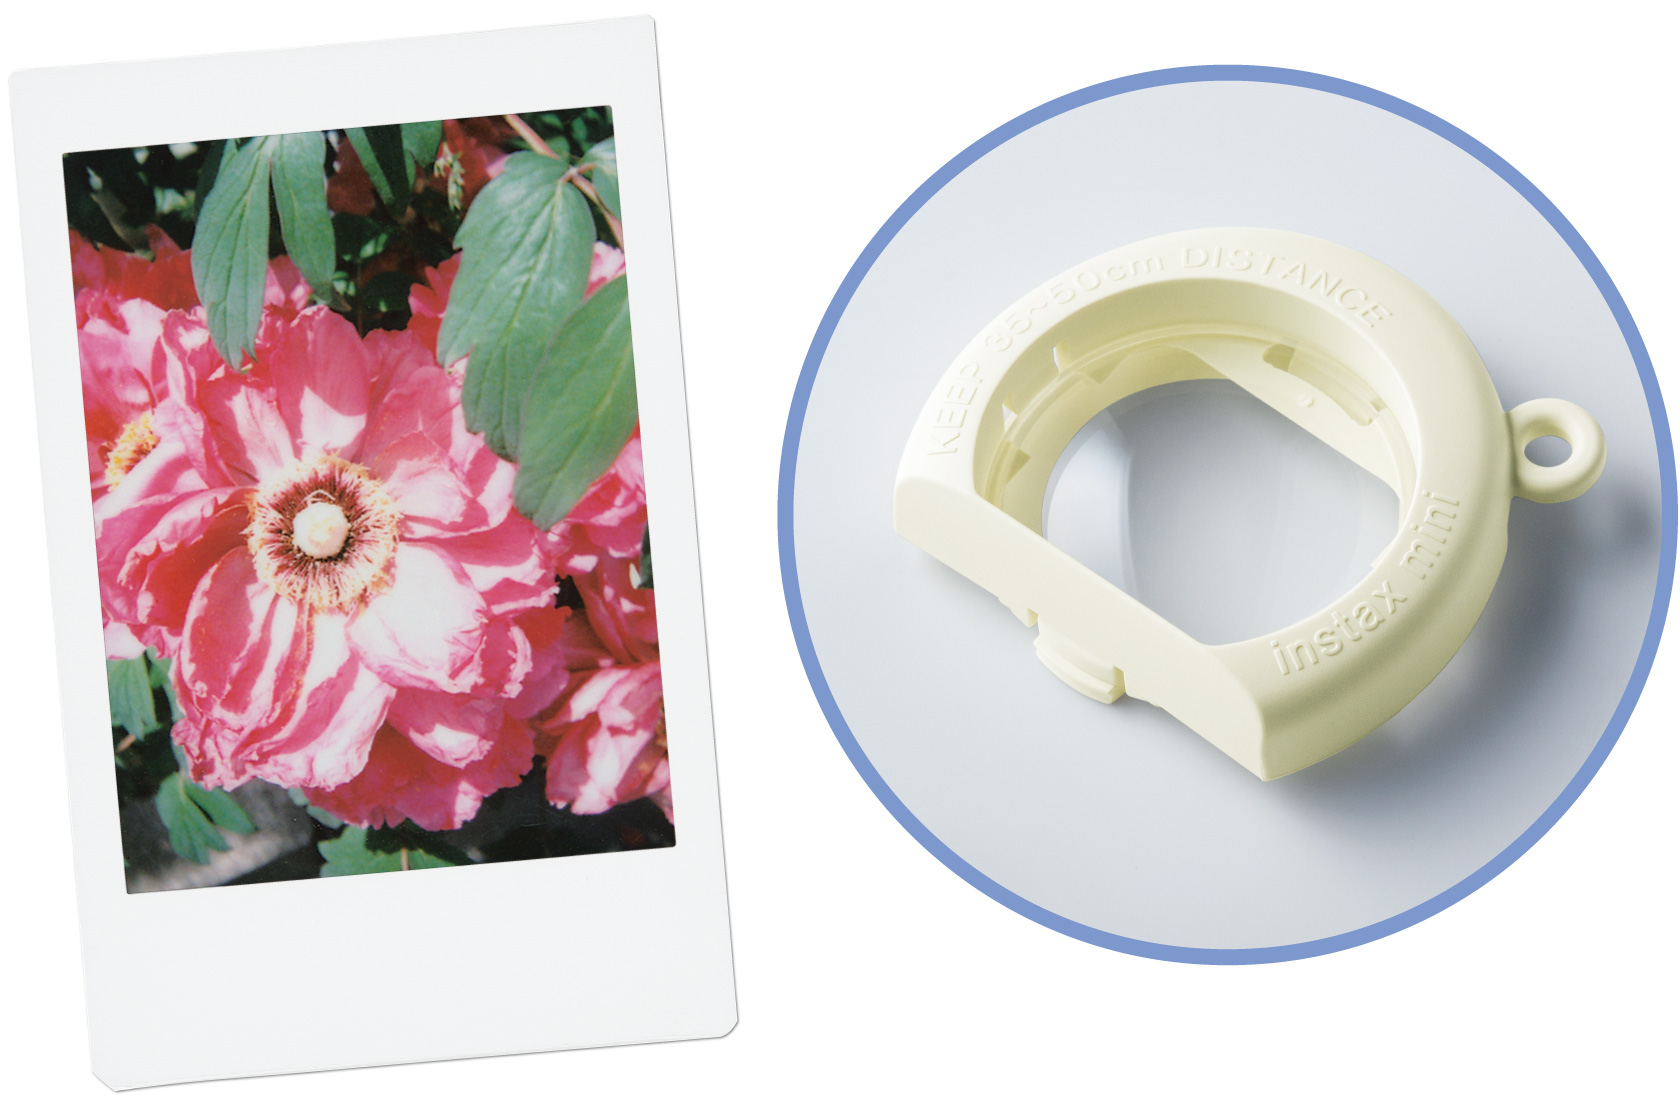 Image of Close-Up Lens Attachment and image of a pink flower